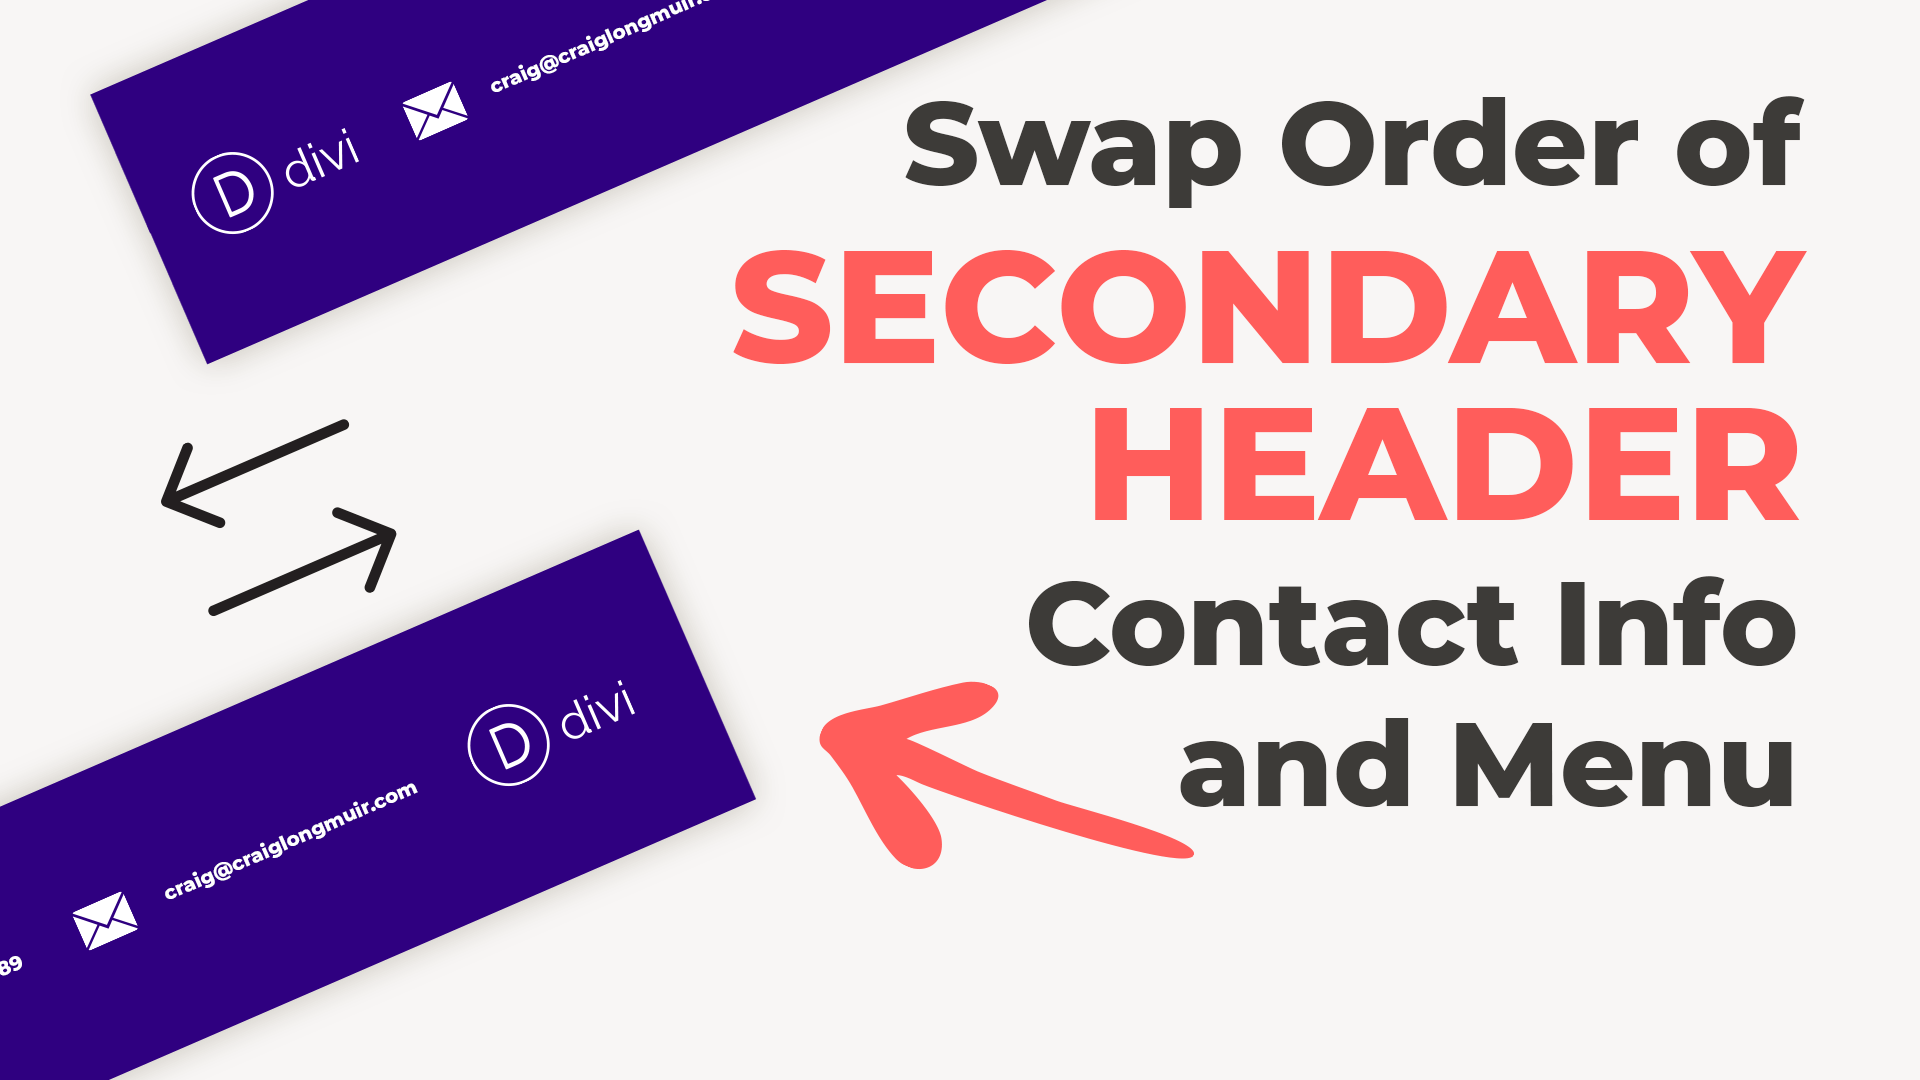 Swap the Order of the Secondary Header Contact Info and Menu